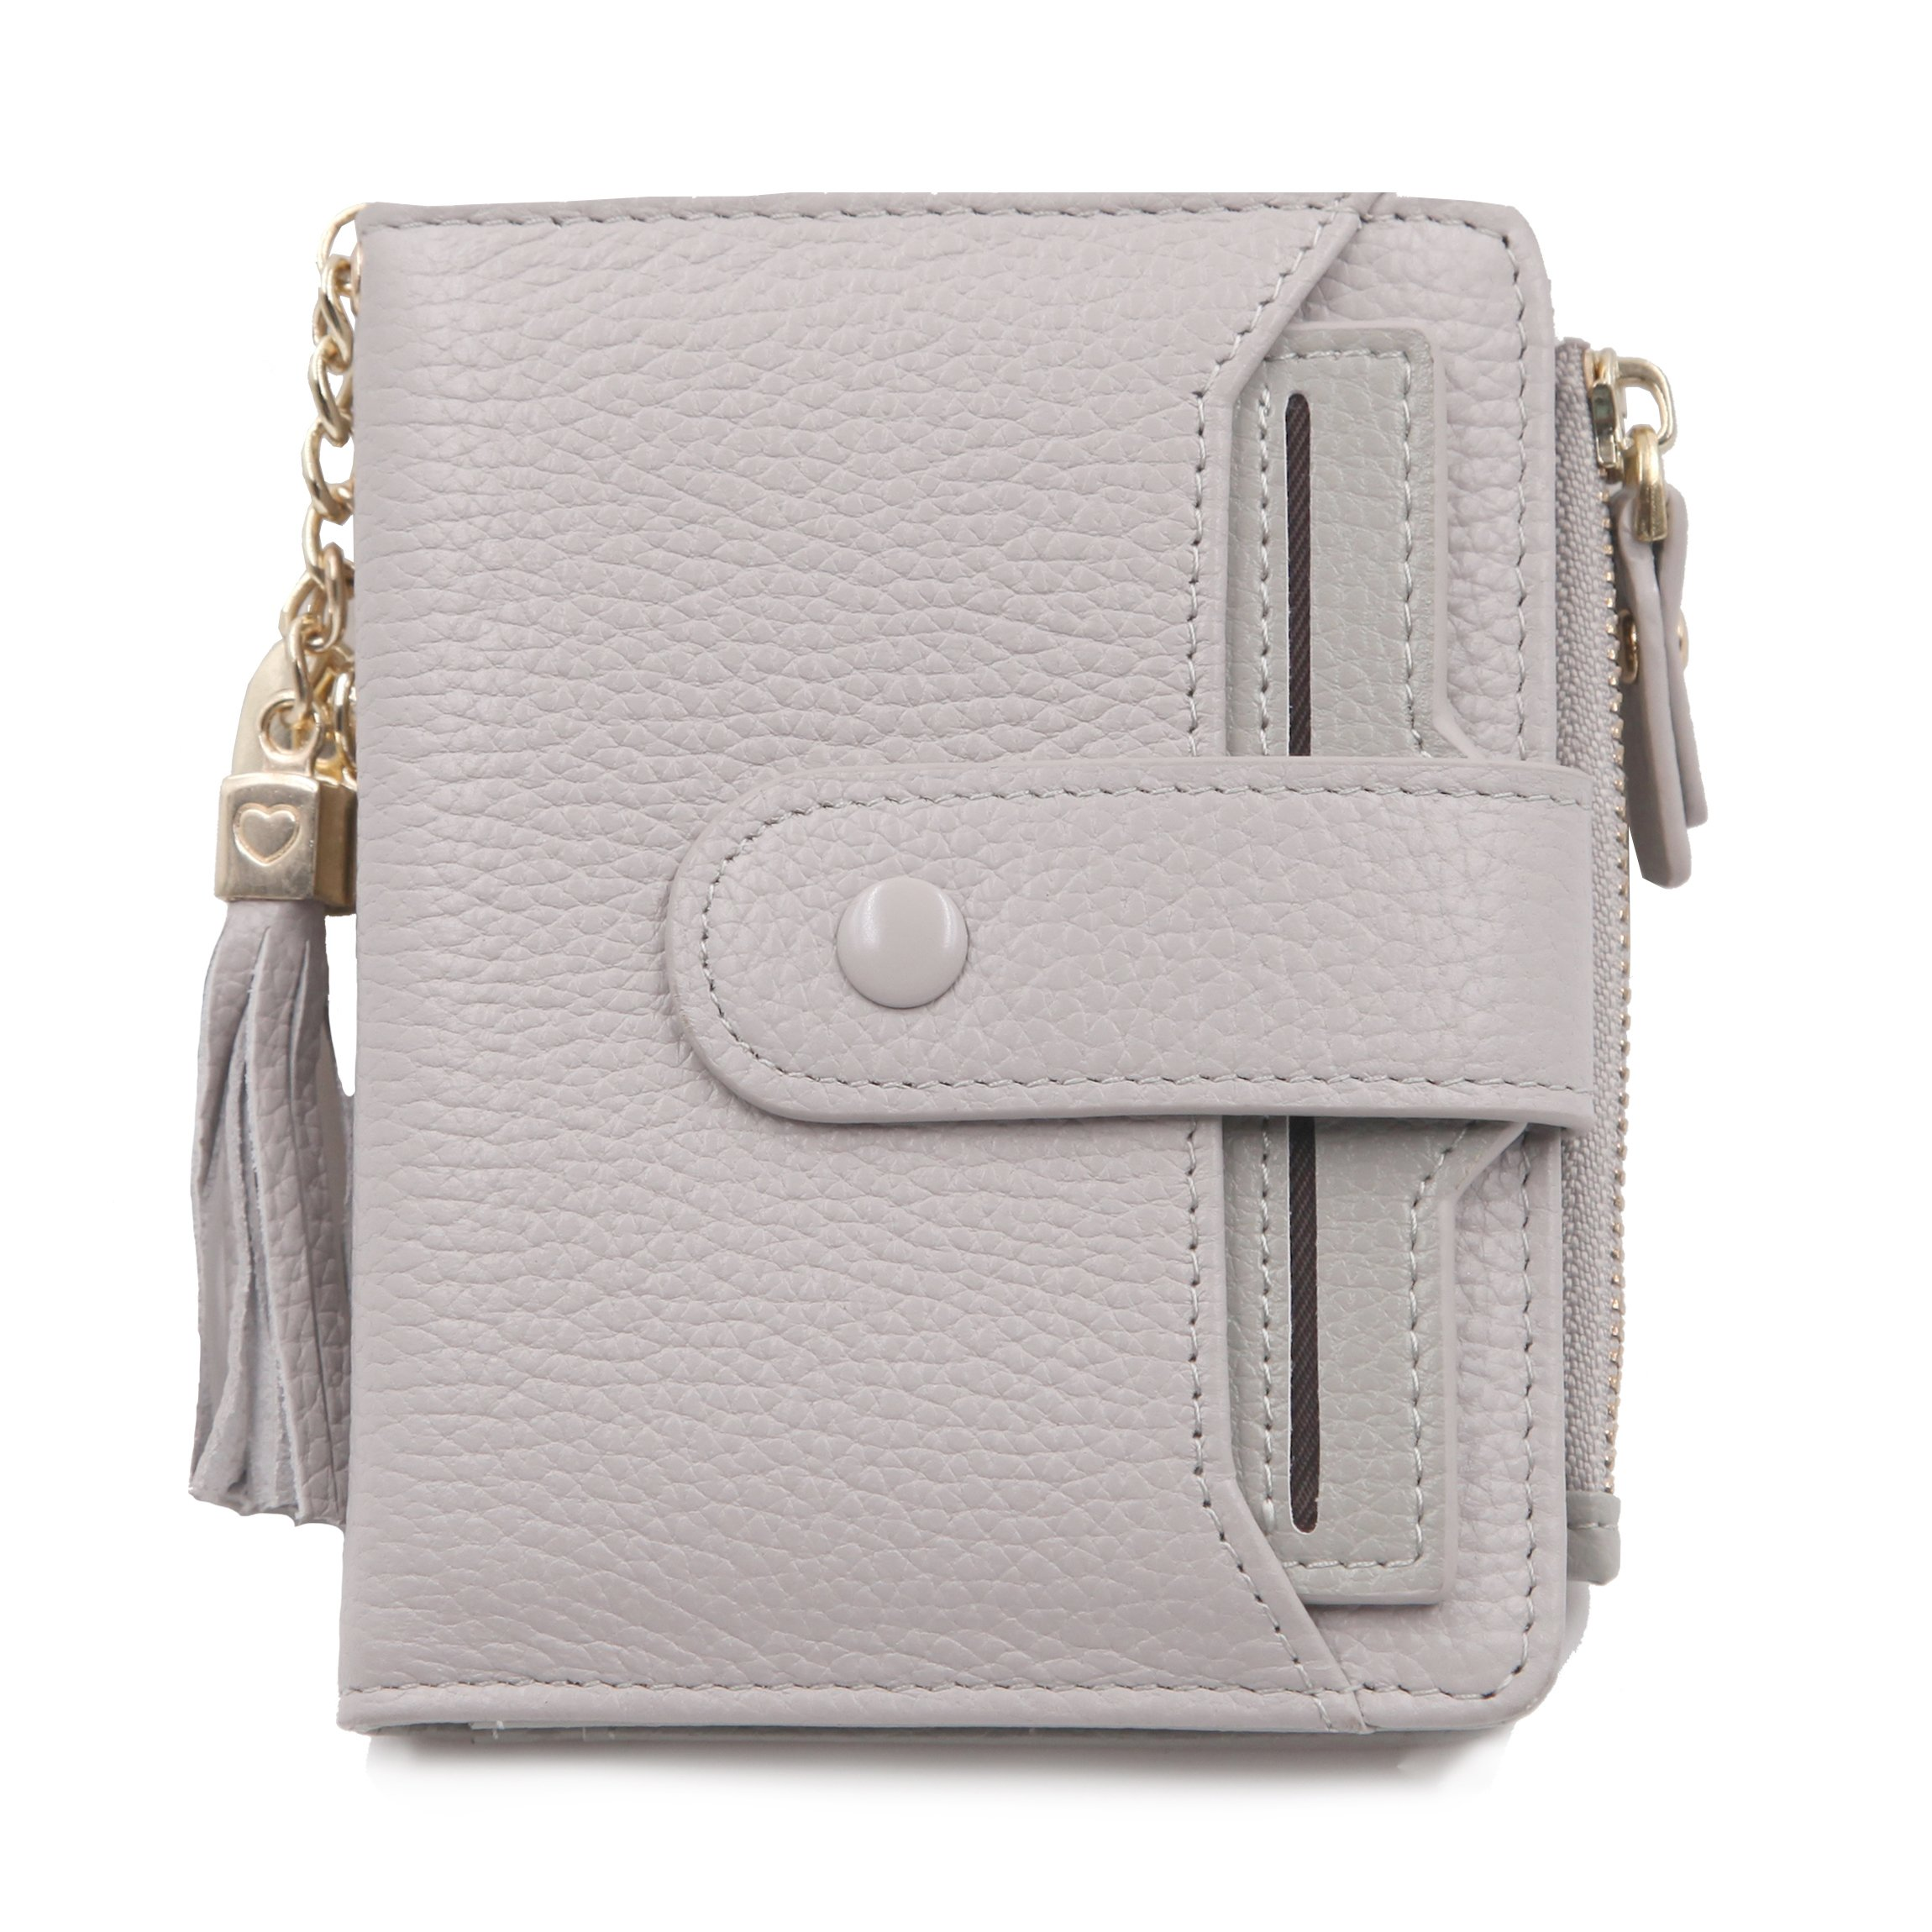 Women's Mini Soft Leather Wallet with ID Window Card Sleeve Bifold Wallet Coin Purse (Gray)